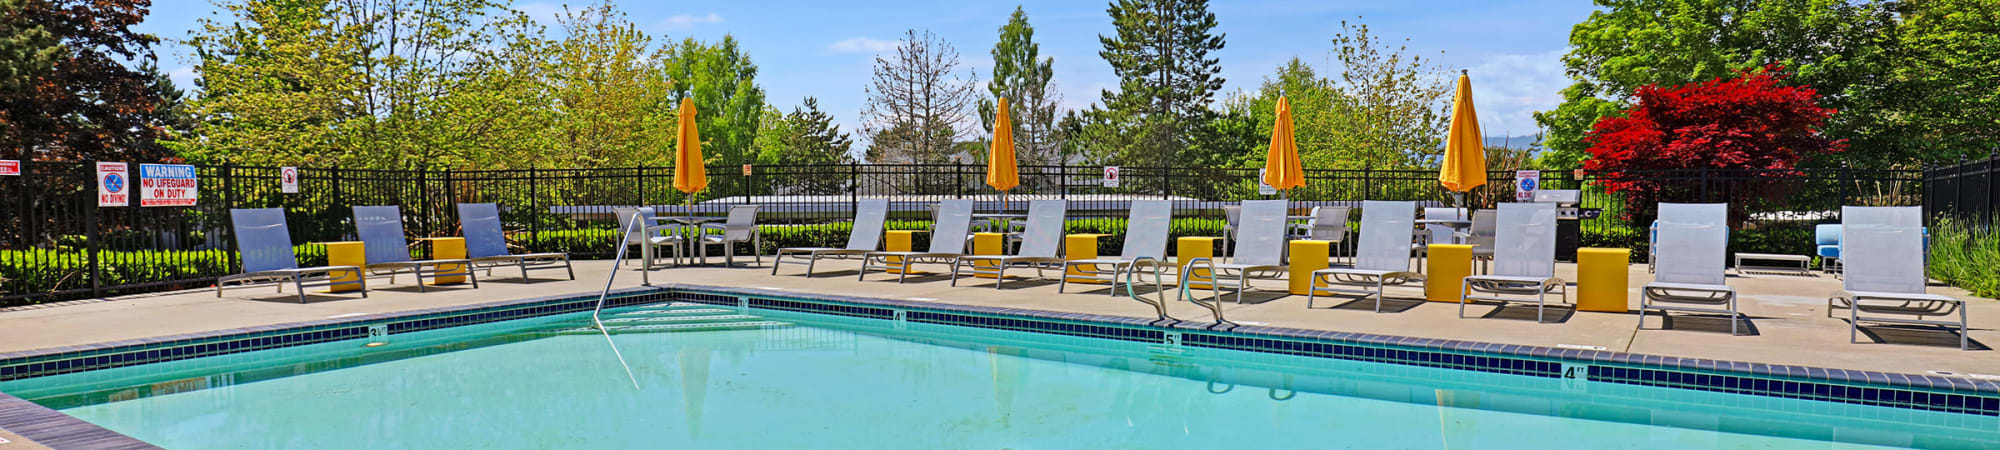 Floor plans with a refreshing outdoor pool for Cascade Ridge in Silverdale, Washington